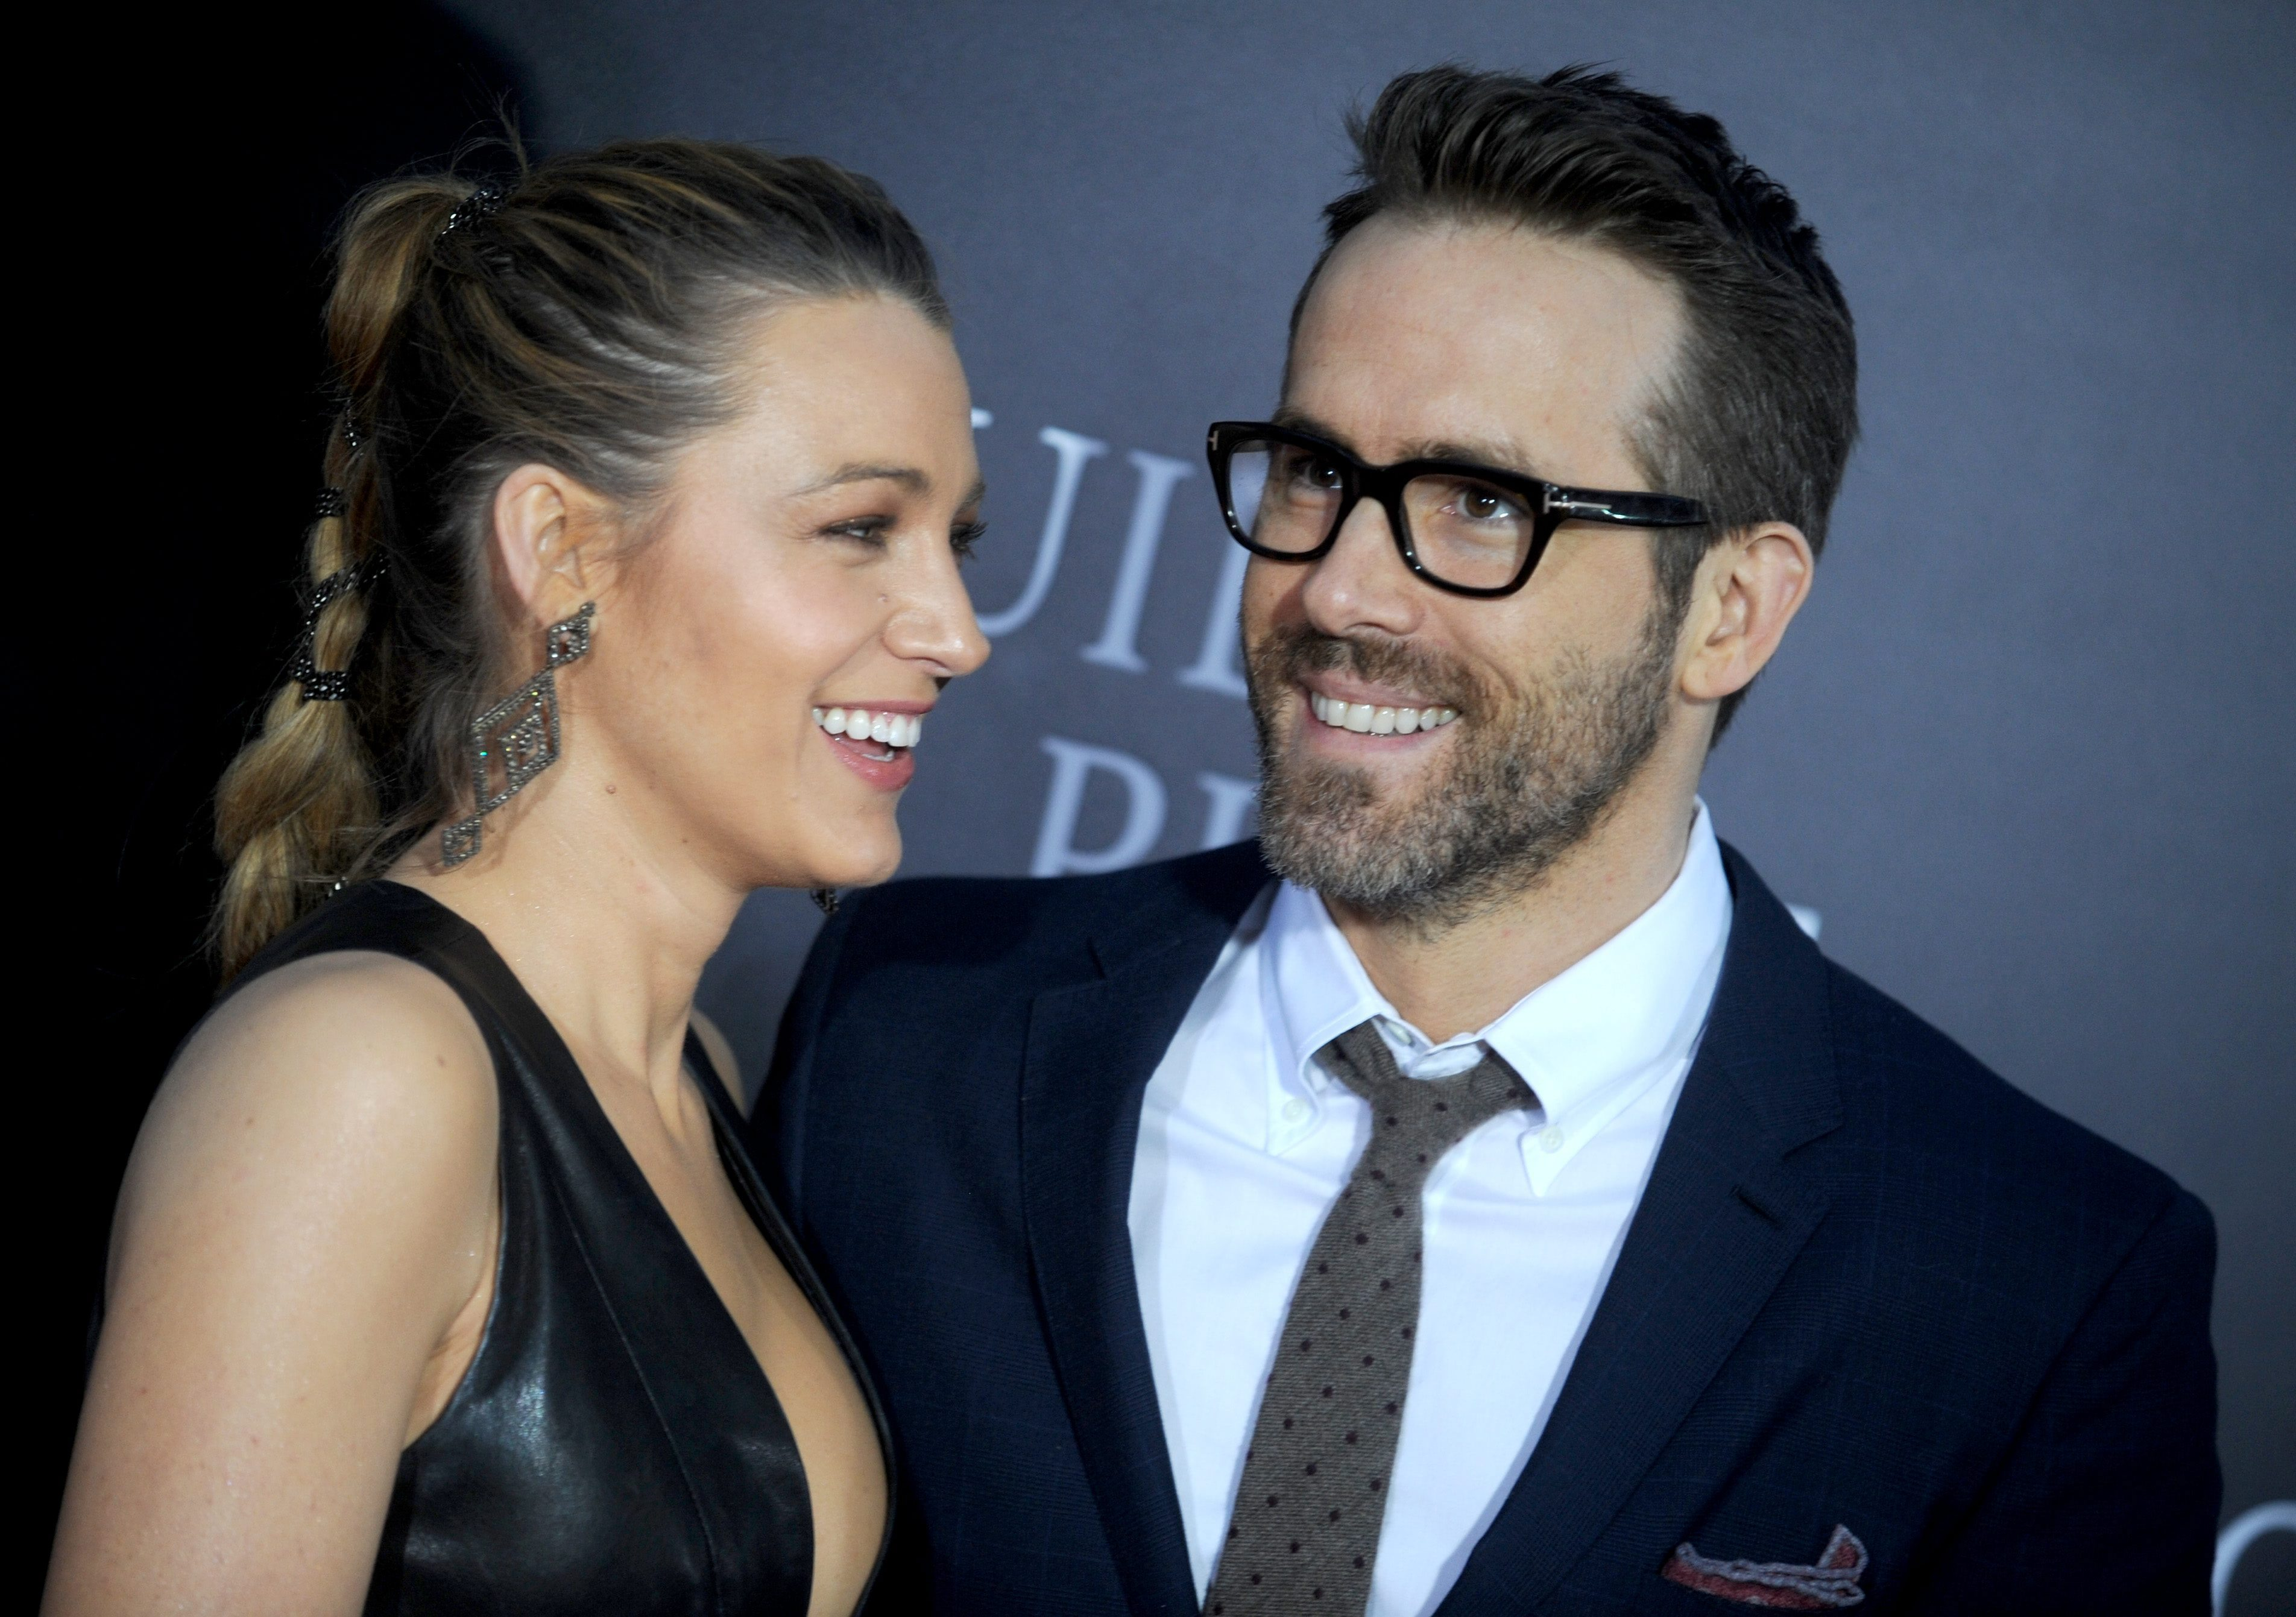 Ryan Reynolds And Blake Lively Donate $500,000 To Support Homeless And Trafficked Youth In Canada